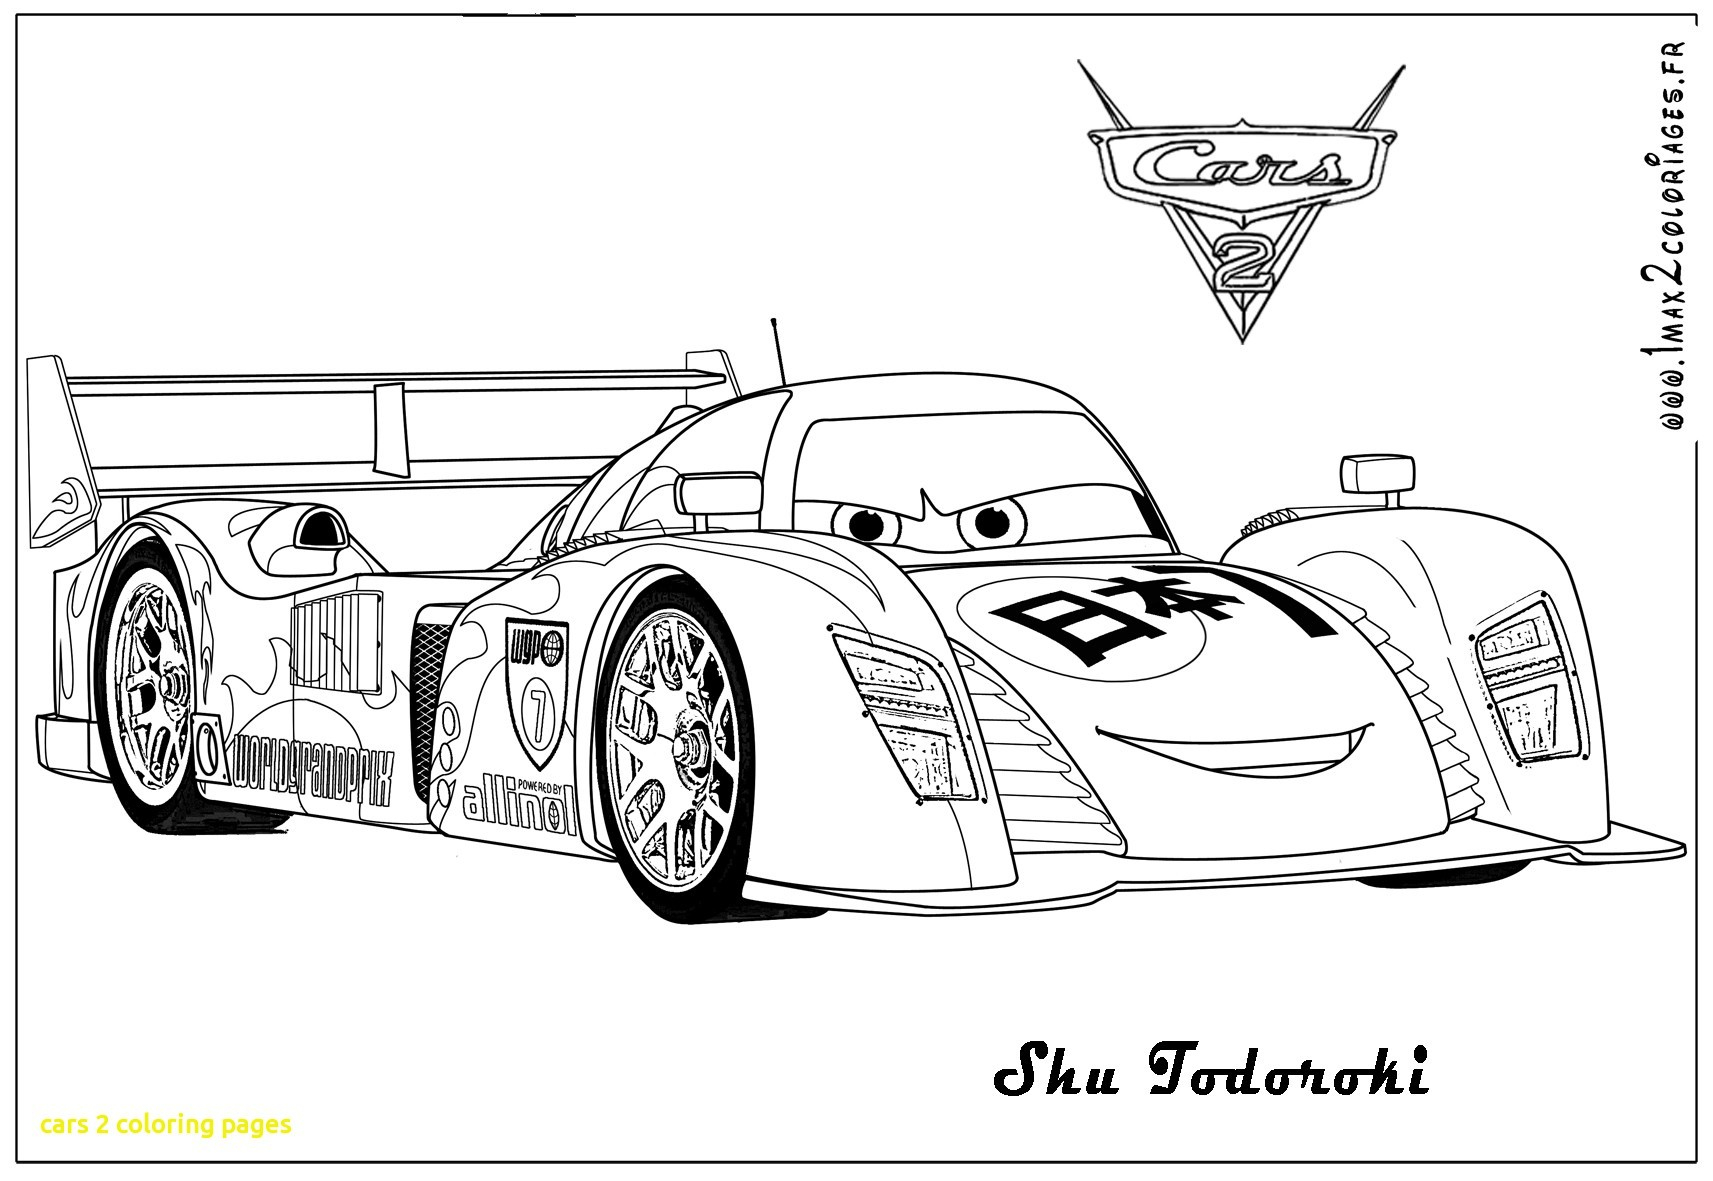 Coloring Pages Cars 2 - Cars 2 Coloring Pages with Cars 2 Coloring Pages with Cars 2 Gallery